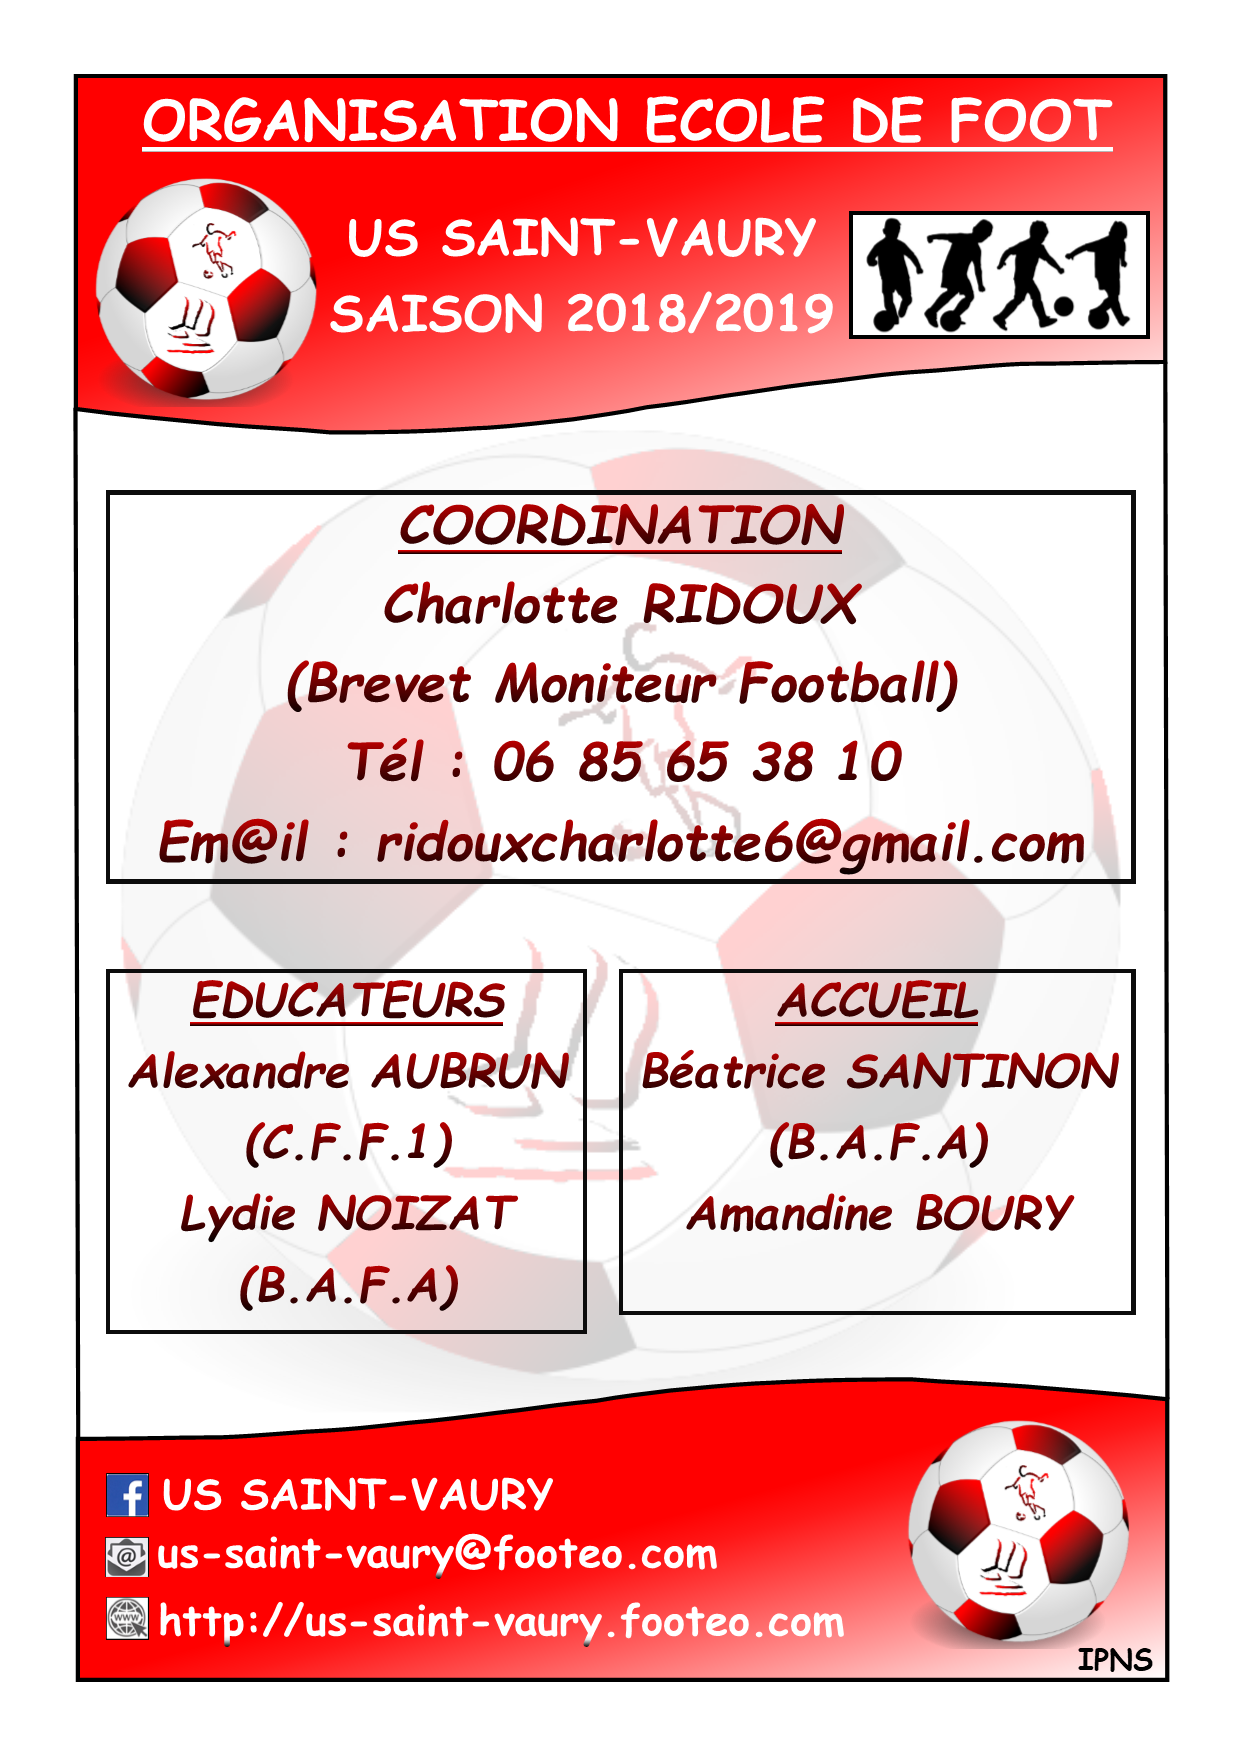 FLYER_ORGANISATION_ECOLE-FOOT_USSV_2018.png